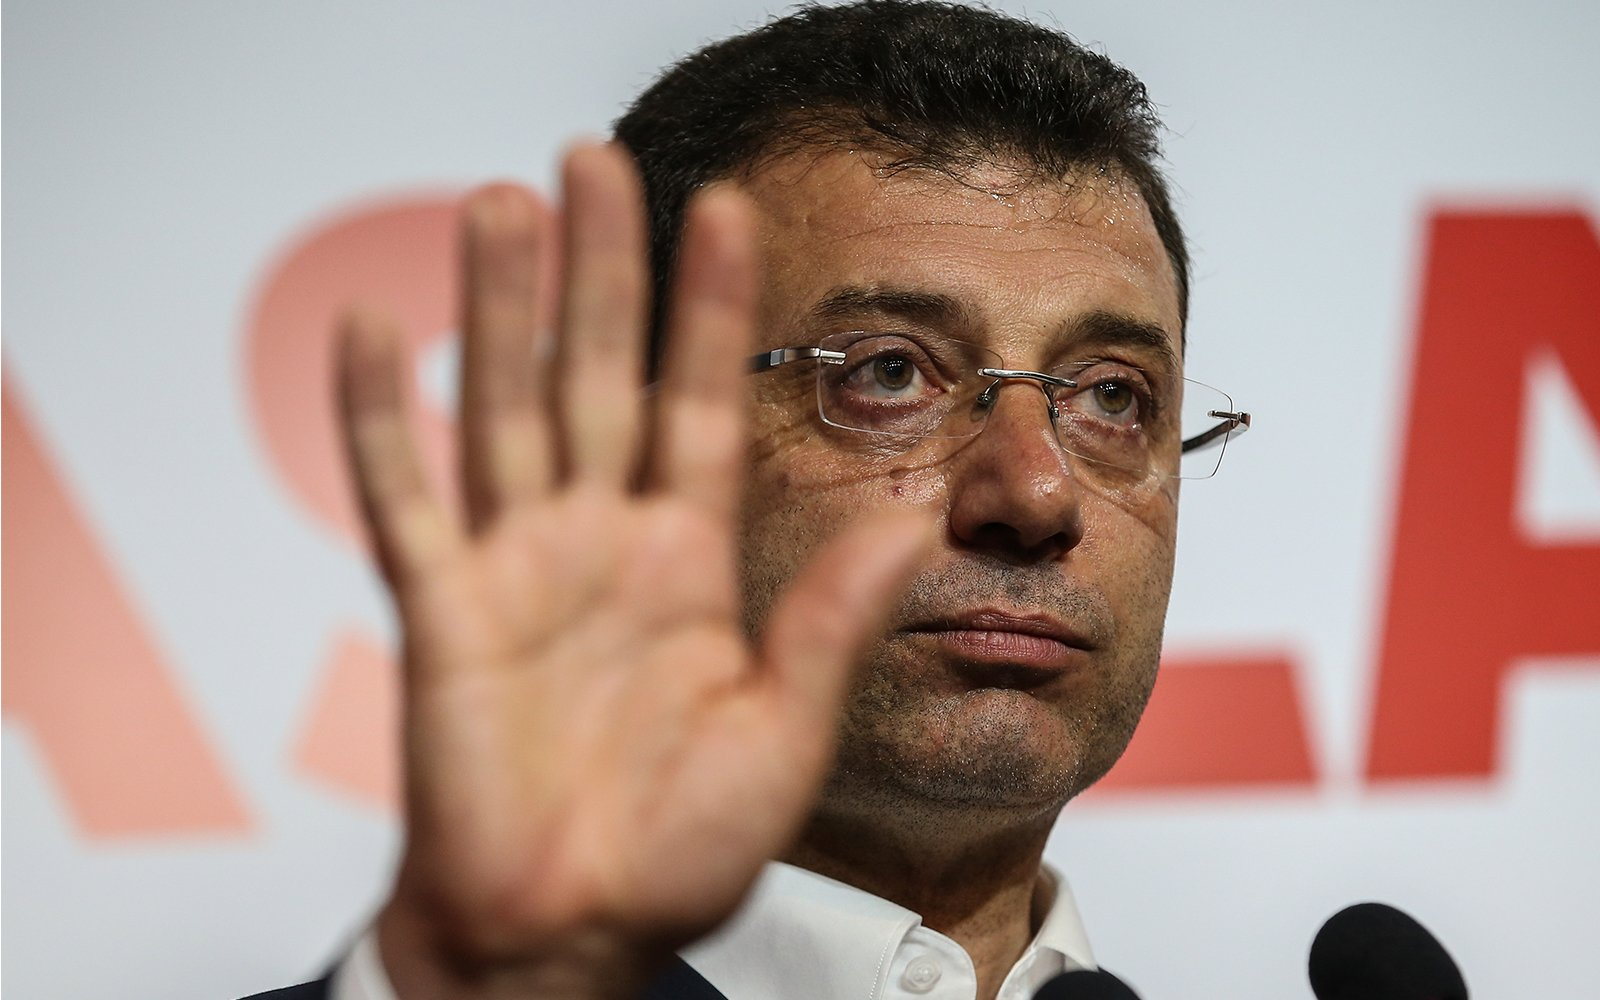 Ruling party attacks opposition's İmamoğlu over the joy of Greeks 1